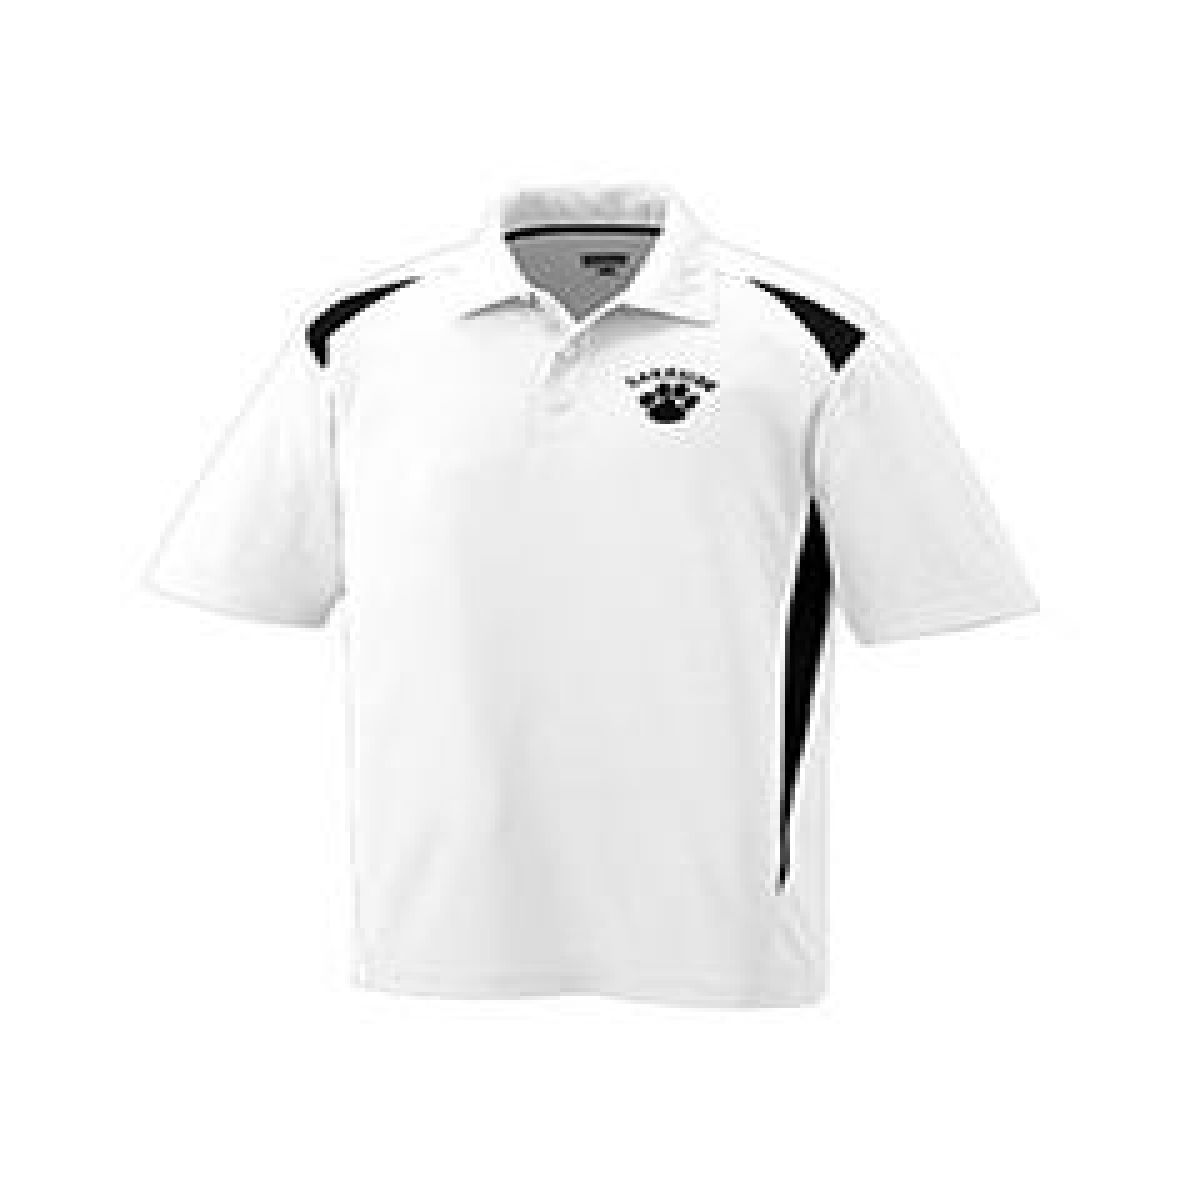 03fe0b3a866 Buy Premier Sport Shirt - Augusta Sportswear Online at Best price - MD